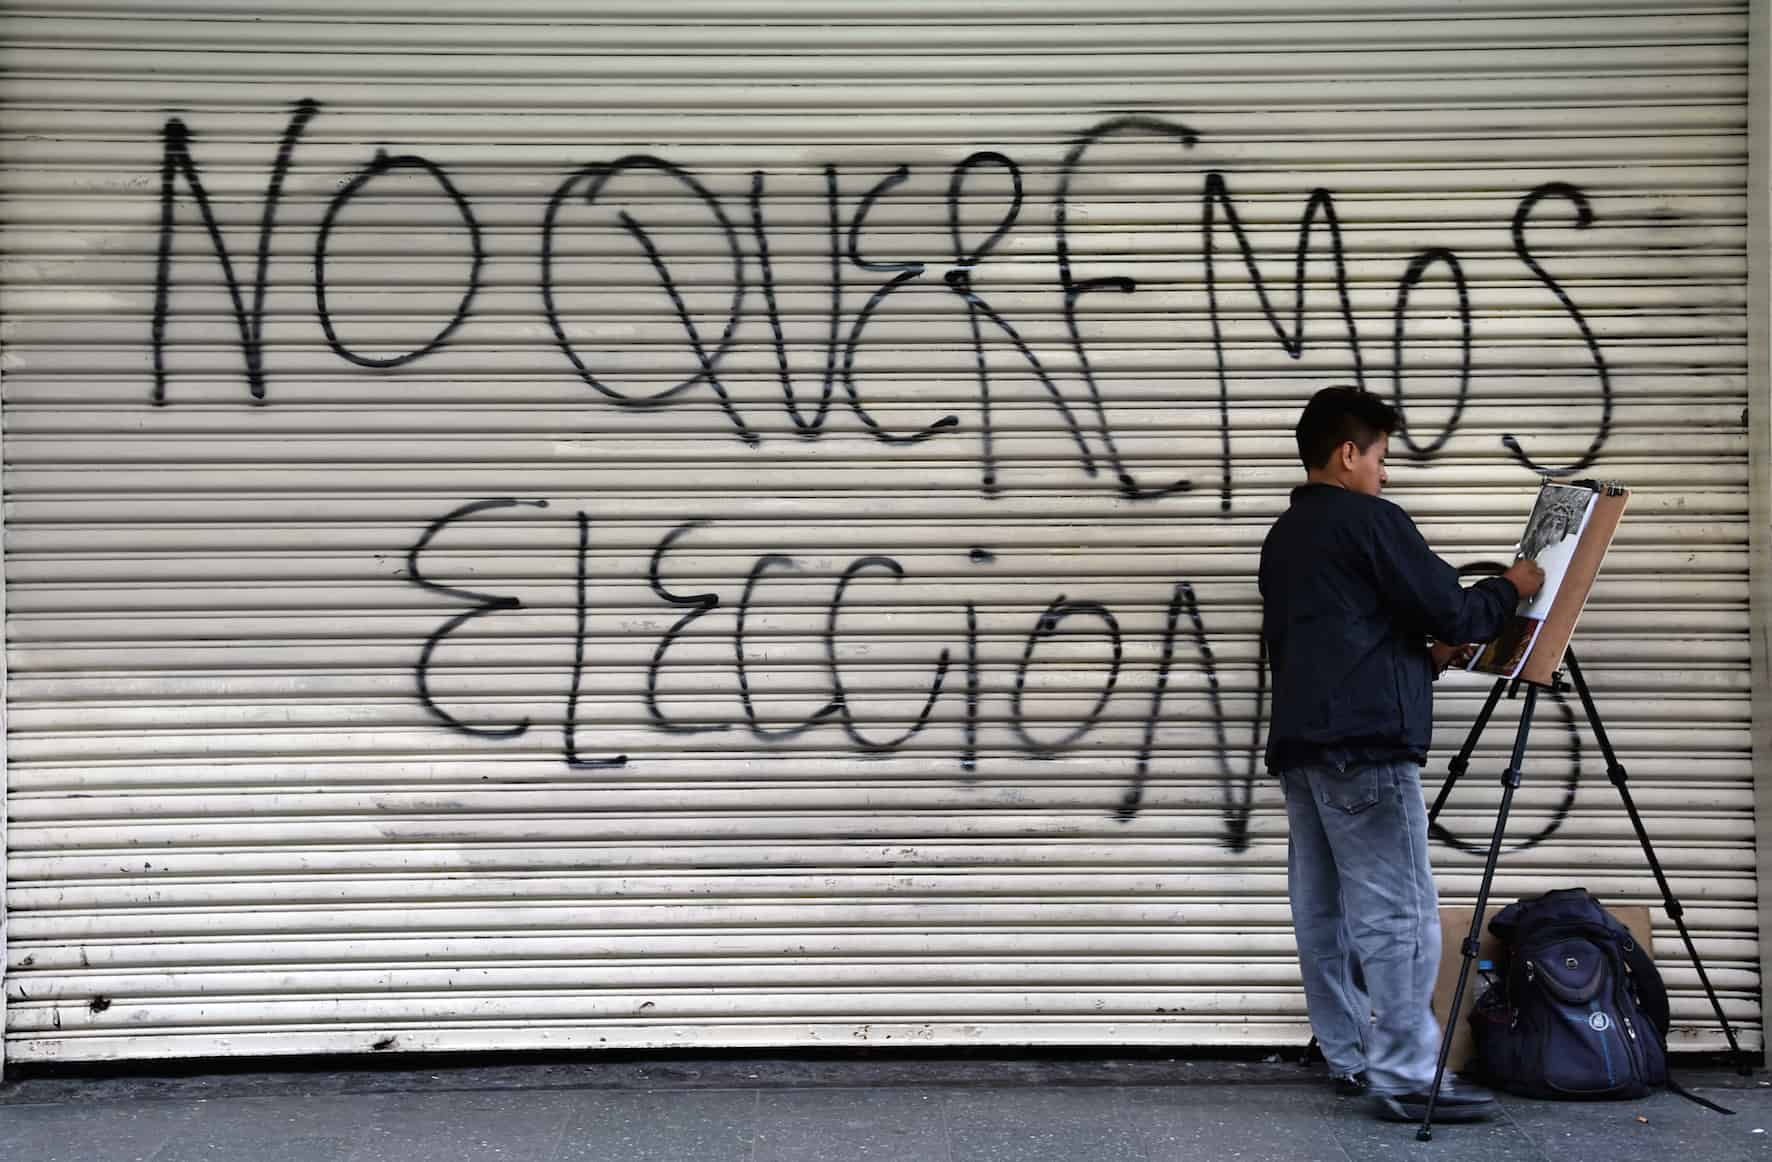 """A man paints next to a graffiti reading """"We don't want elections"""" on the eve of general elections in Guatemala City on Sept. 5, 2015. Guatemalans disgusted with rampant corruption that felled their president are set to vote Sunday in elections many see as meaningless without a vast political system cleanup."""